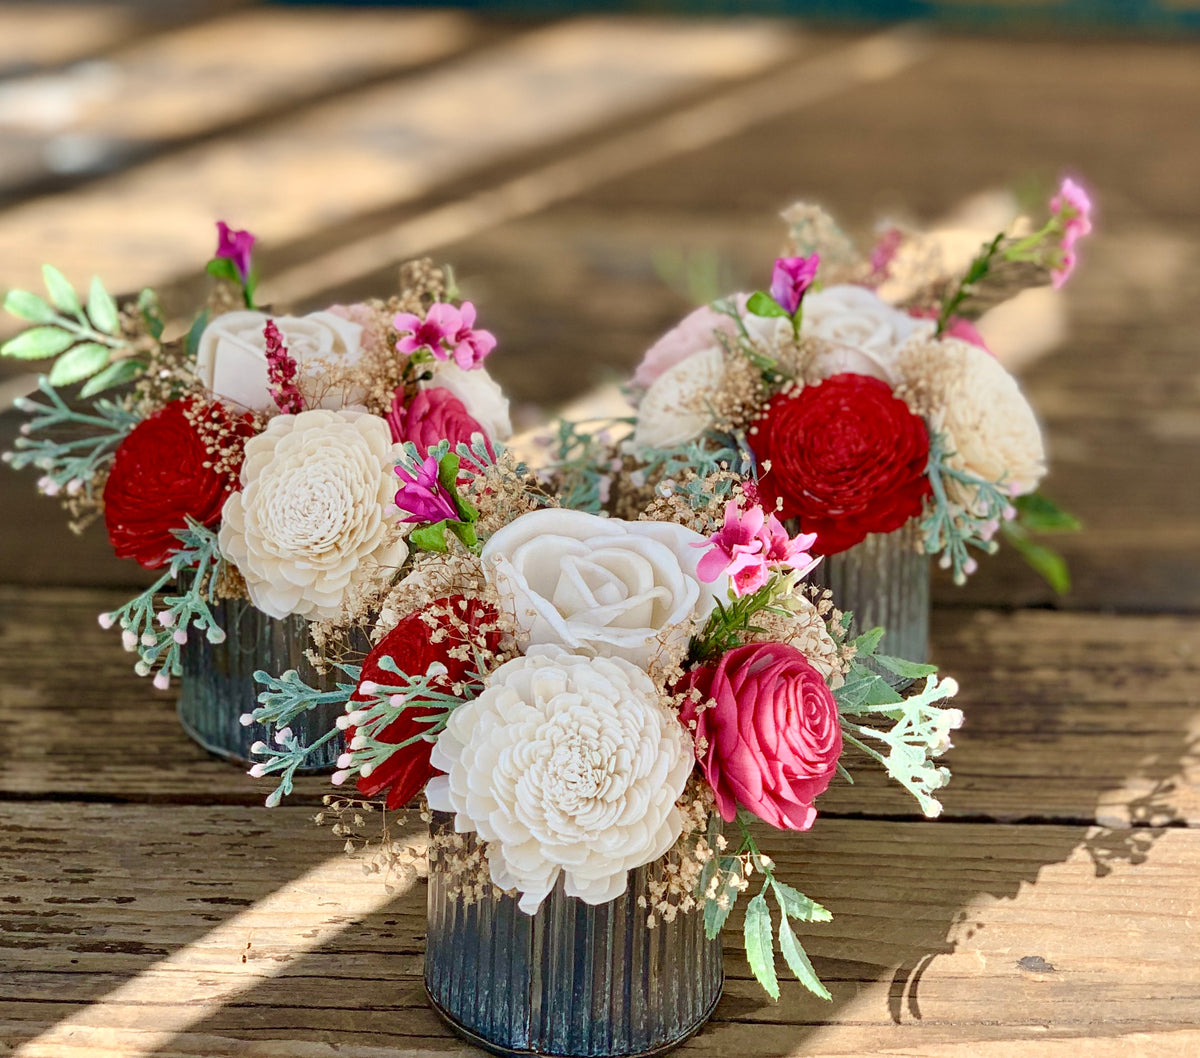 Small Sola Flower Floral Arrangement, Wedding Reception Centerpiece